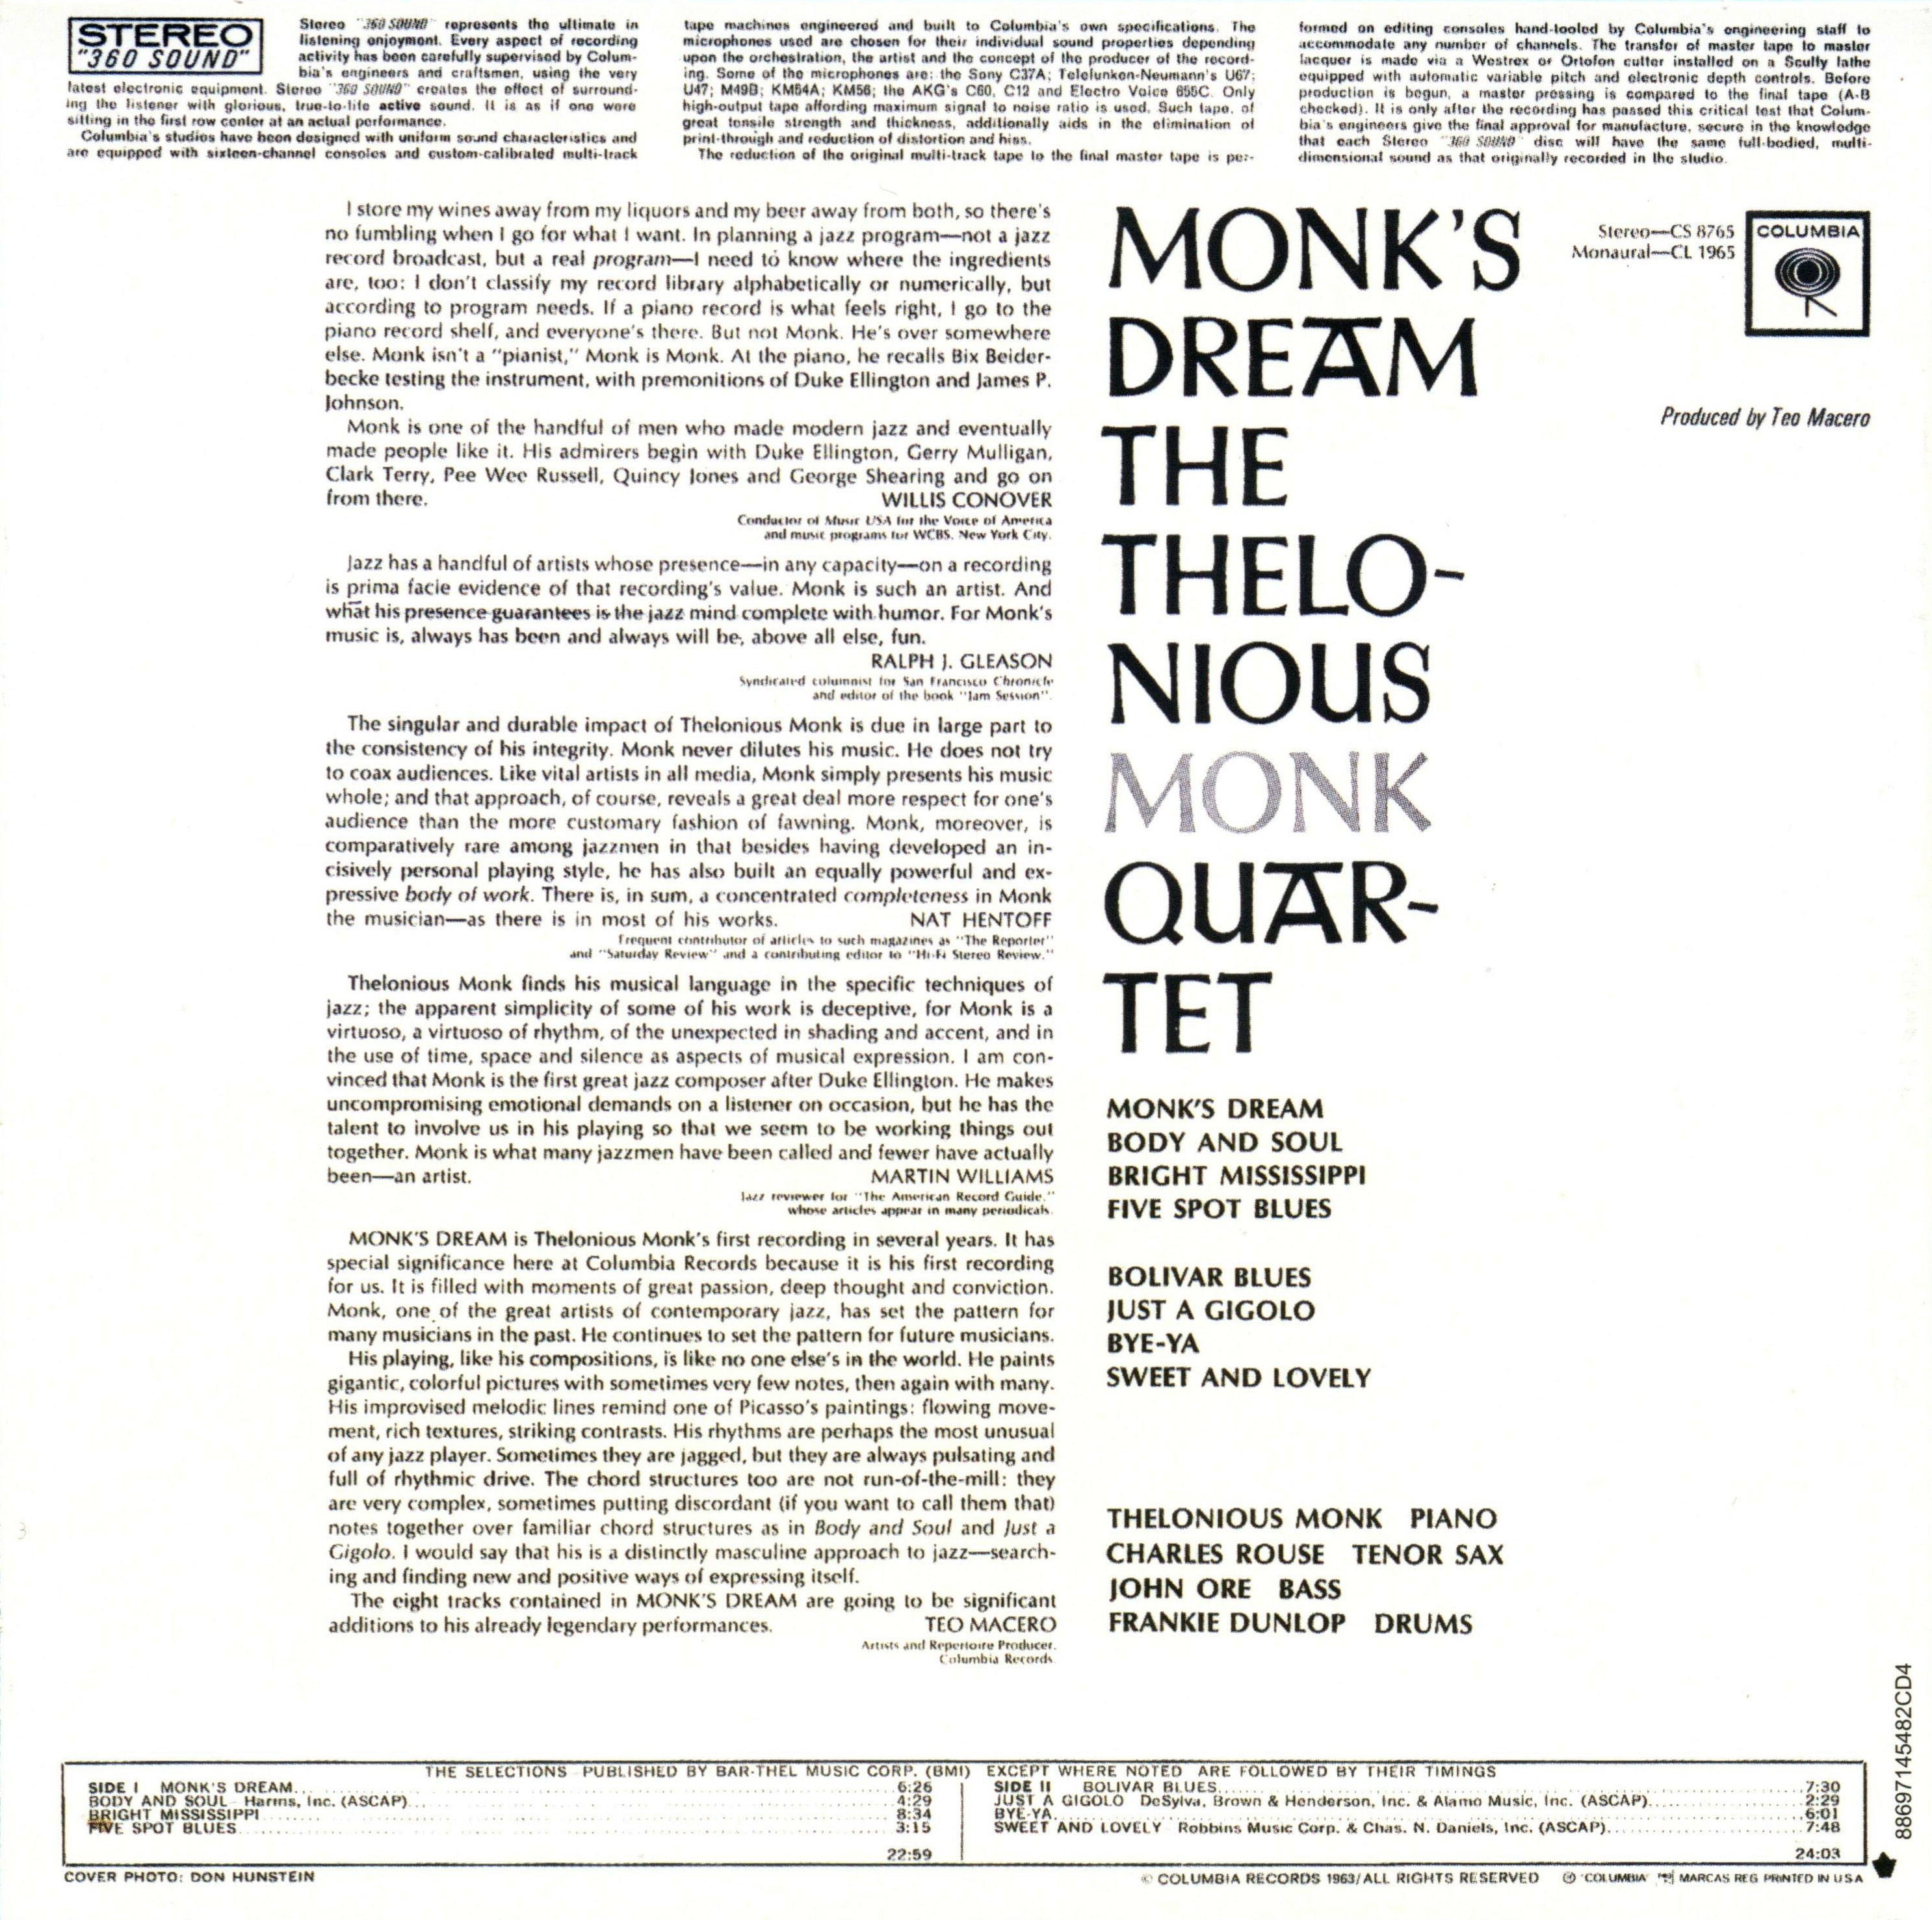 an analysis of the album monks dream by thelonious monk A lost 1963 live recording of thelonious monk has been recovered from a skip  bin, and  you can pre-order the album here  monk's dream.